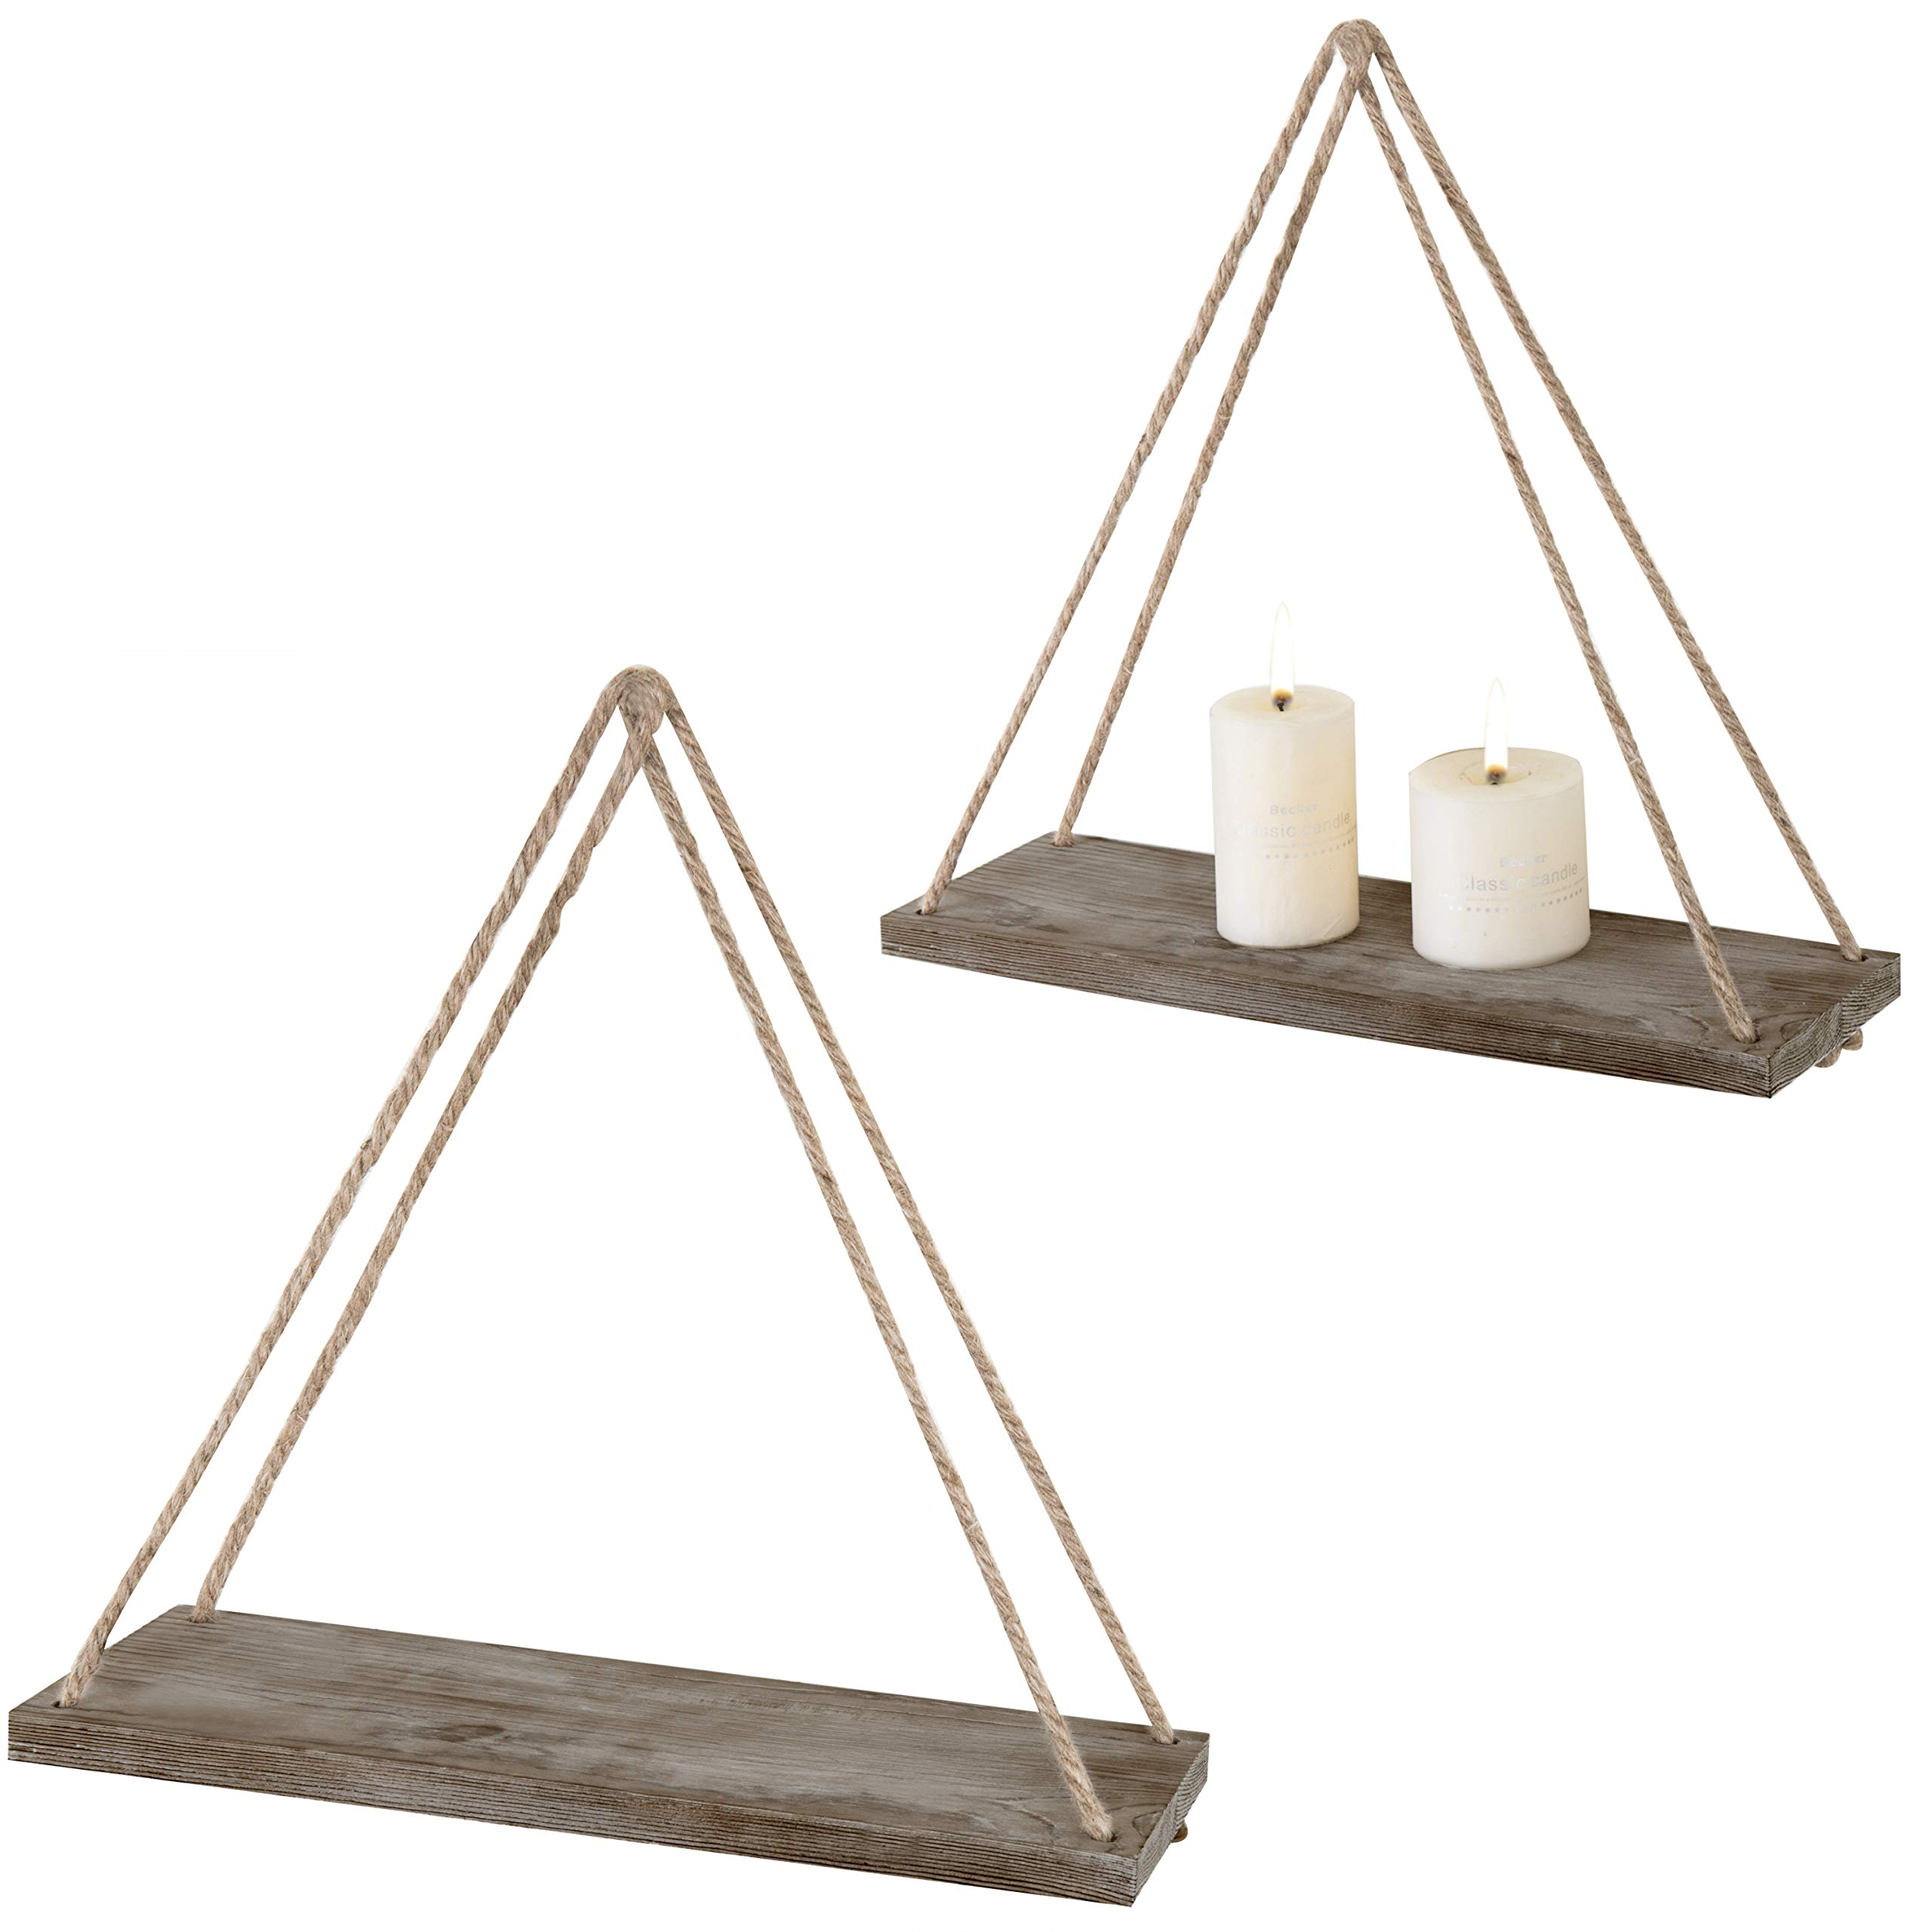 MyGift 17-inch Rustic Whitewashed Brown Wood Hanging Rope Swing Shelves, Set of 2